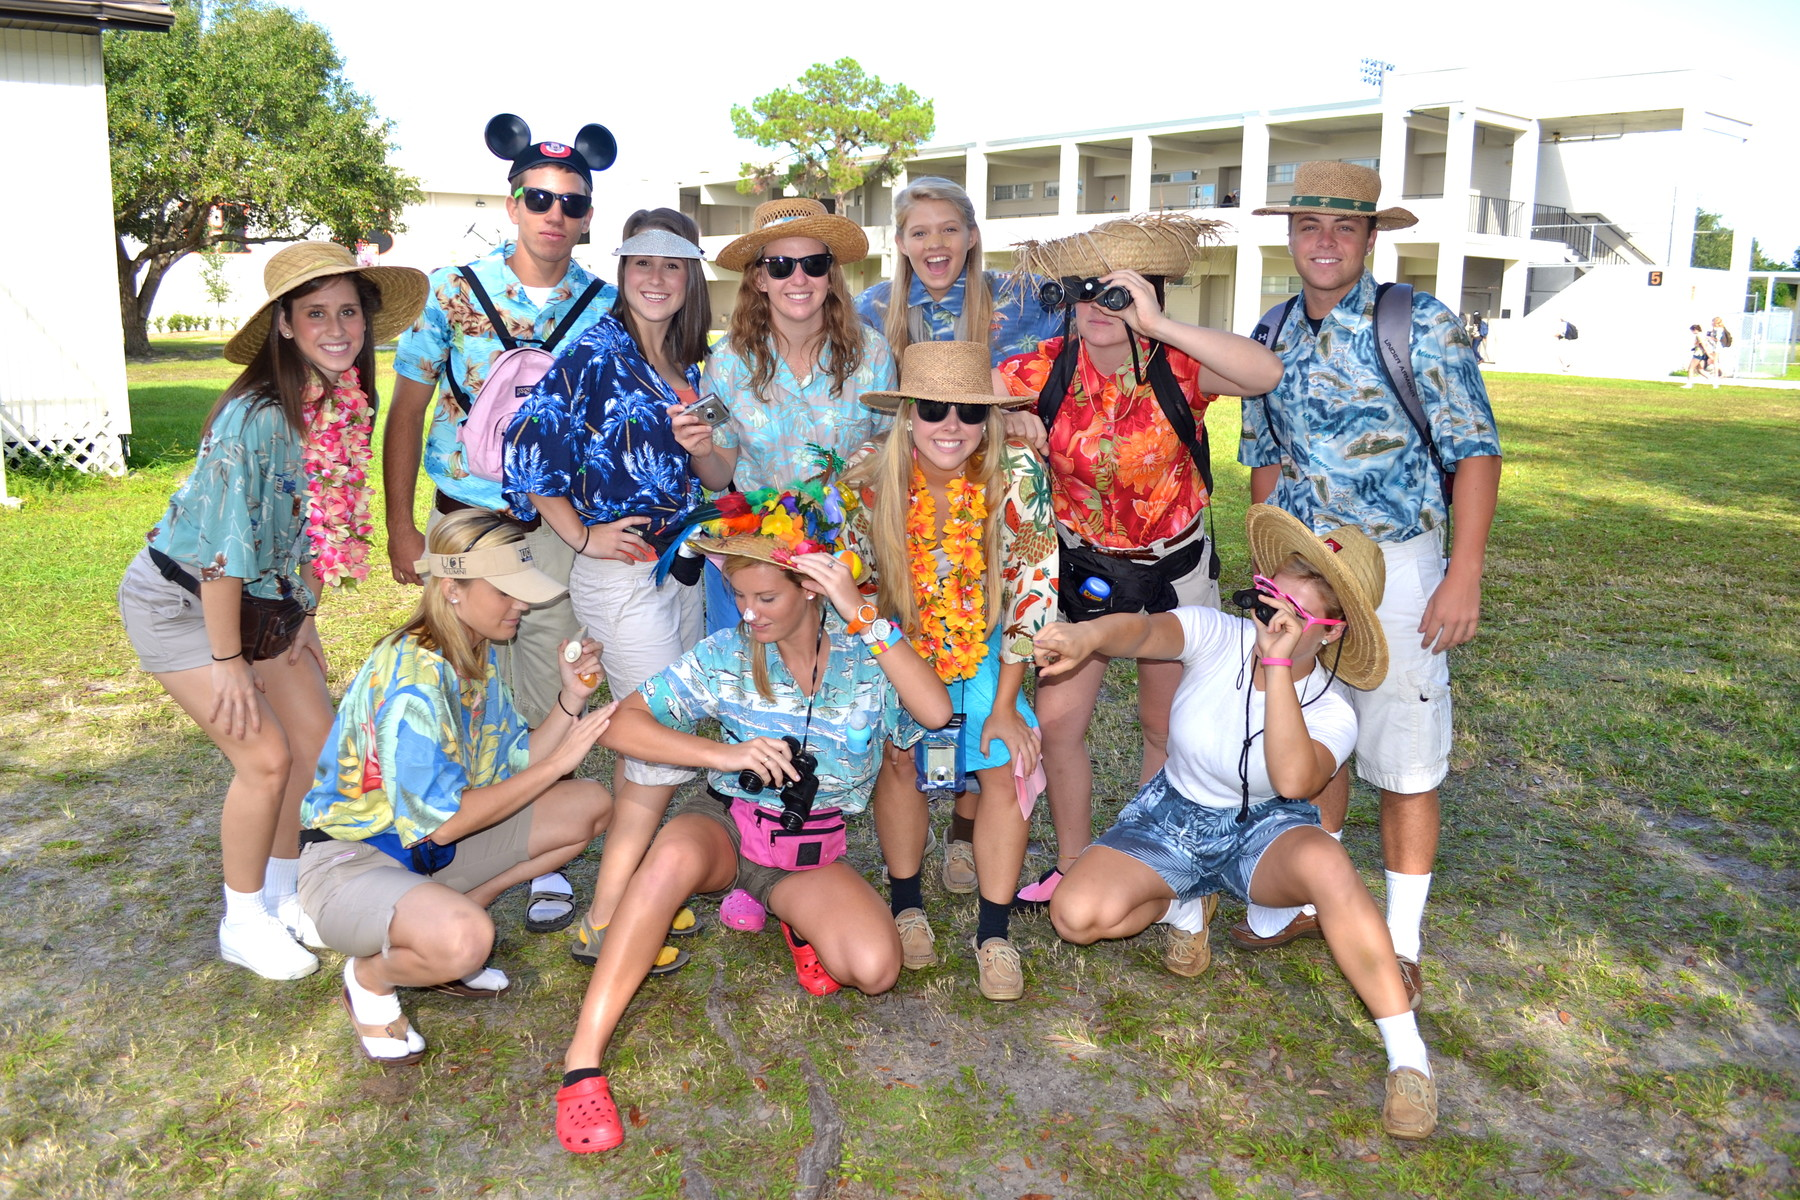 PHOTO GALLERY Sarasota High School Tacky Tourist Day | Sarasota | Your Observer